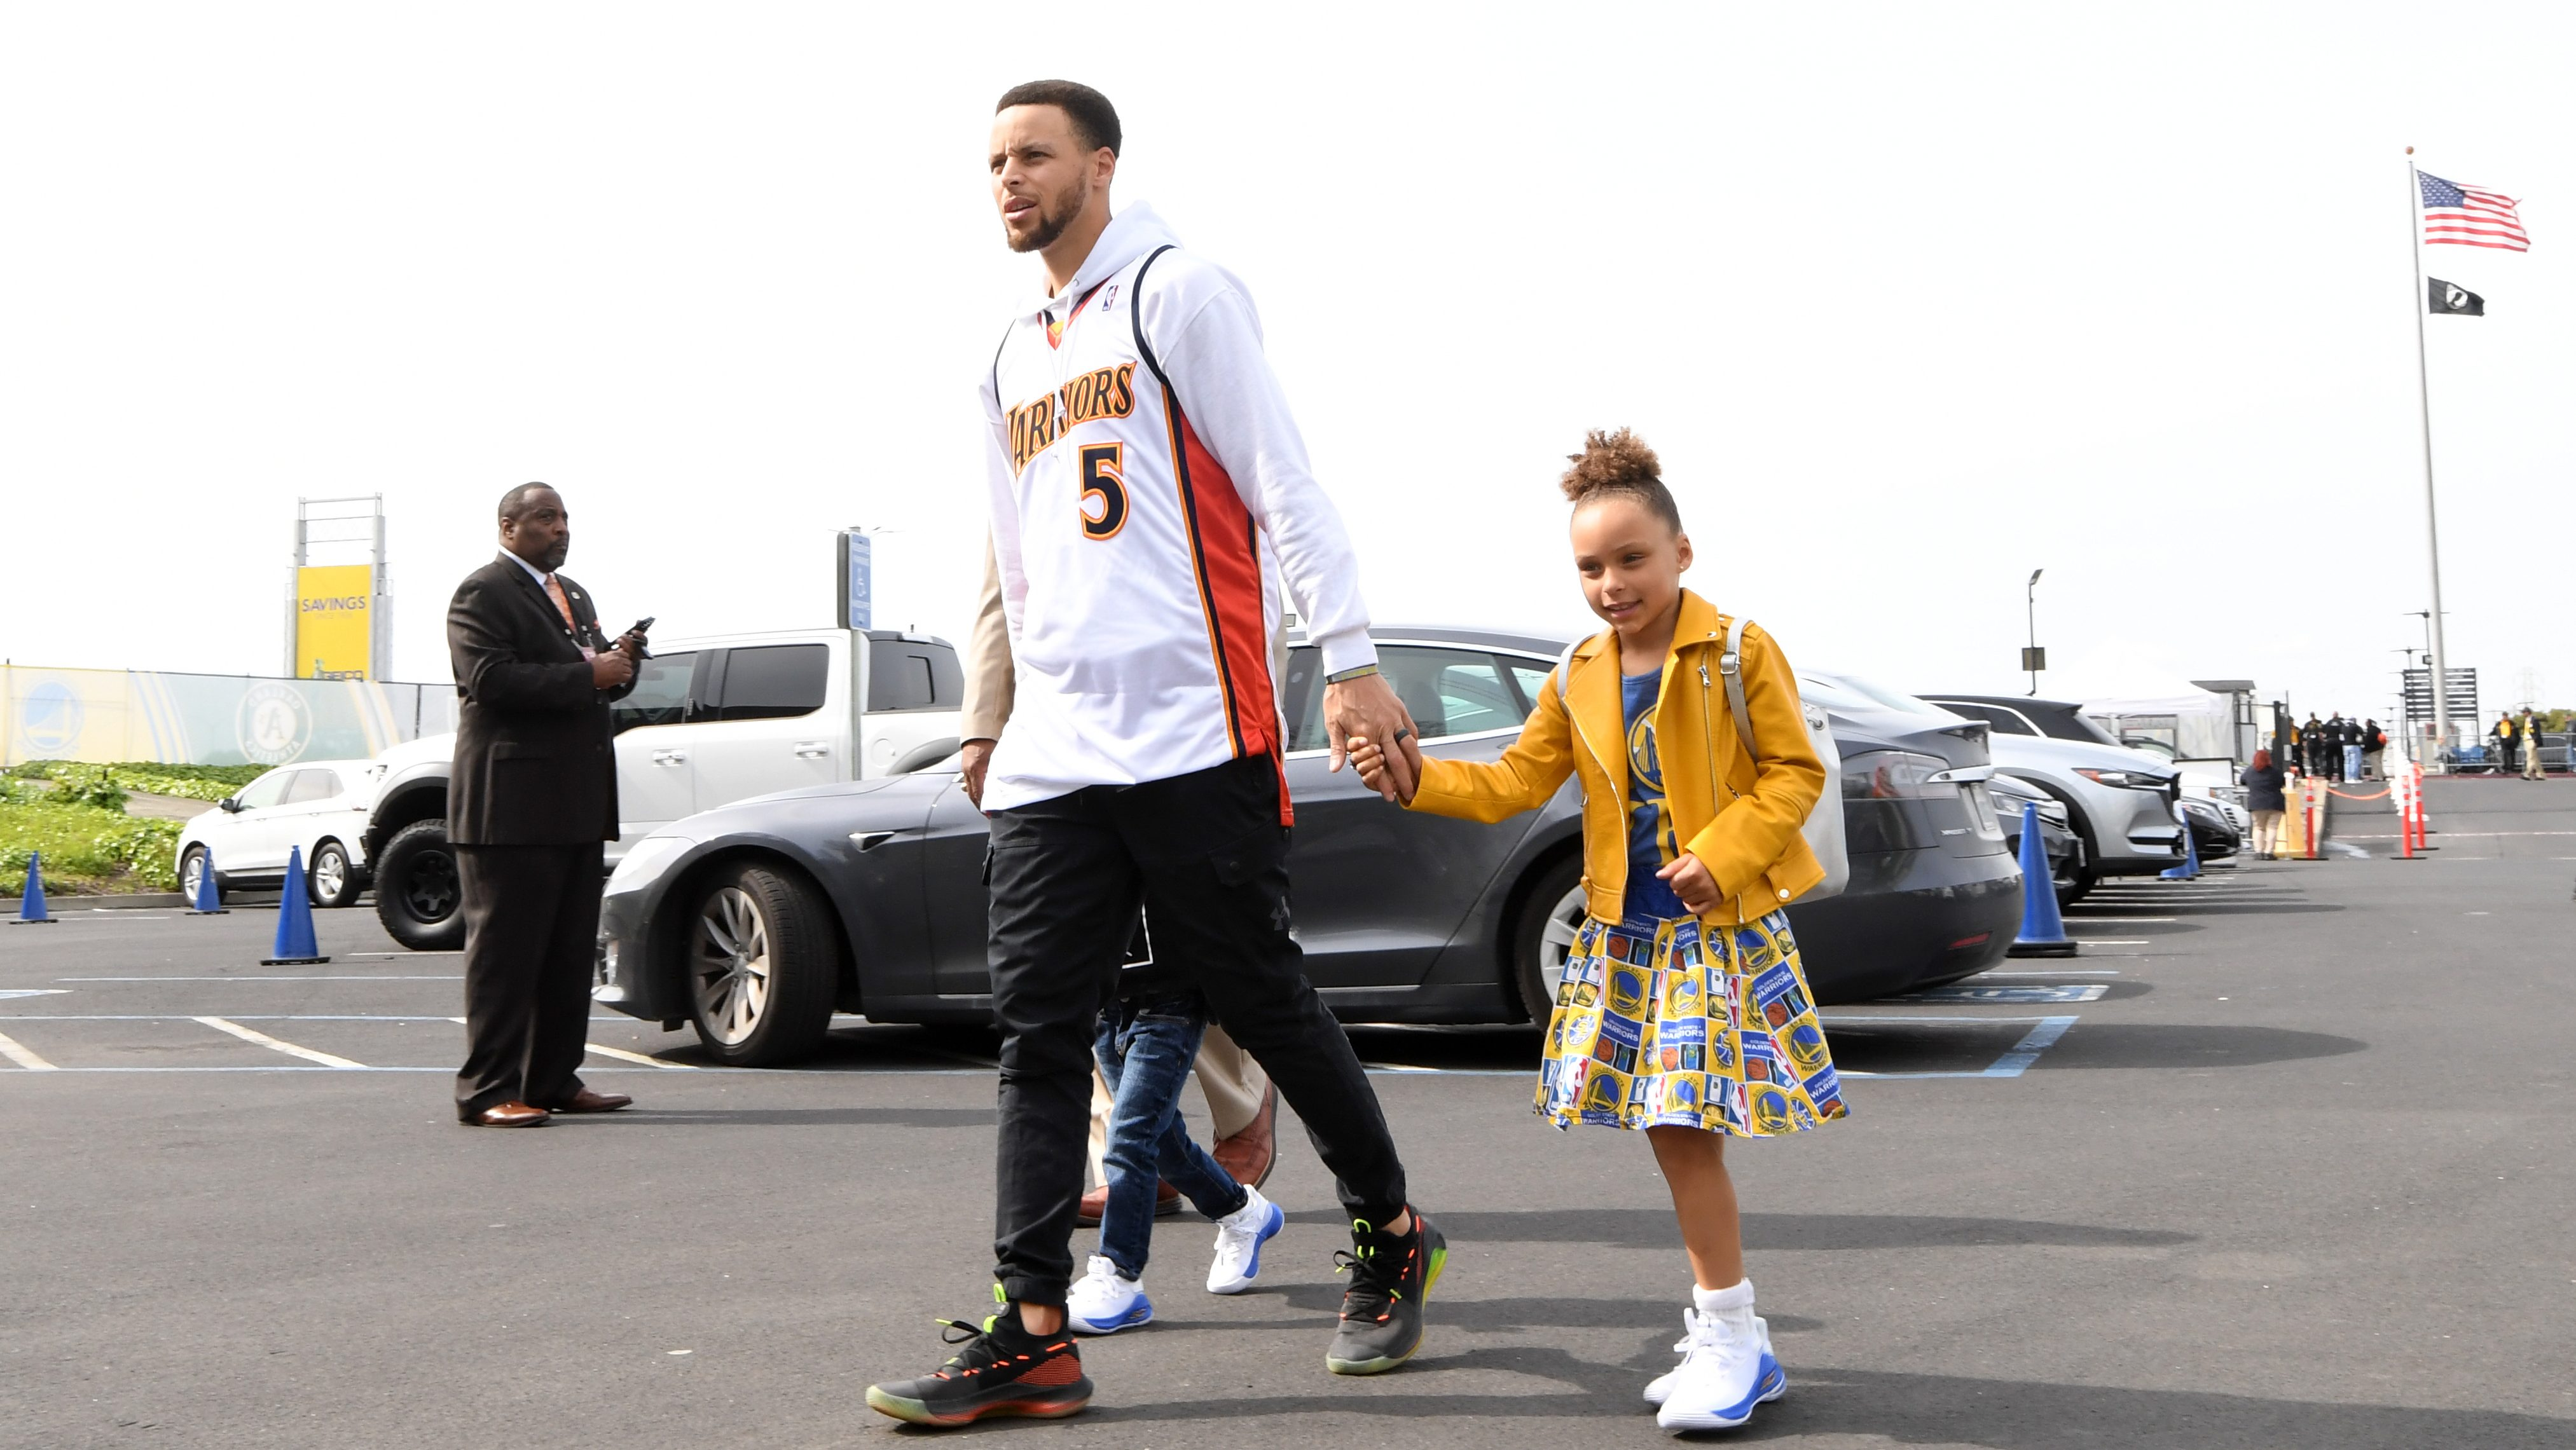 Steph unplugged: Curry takes fans